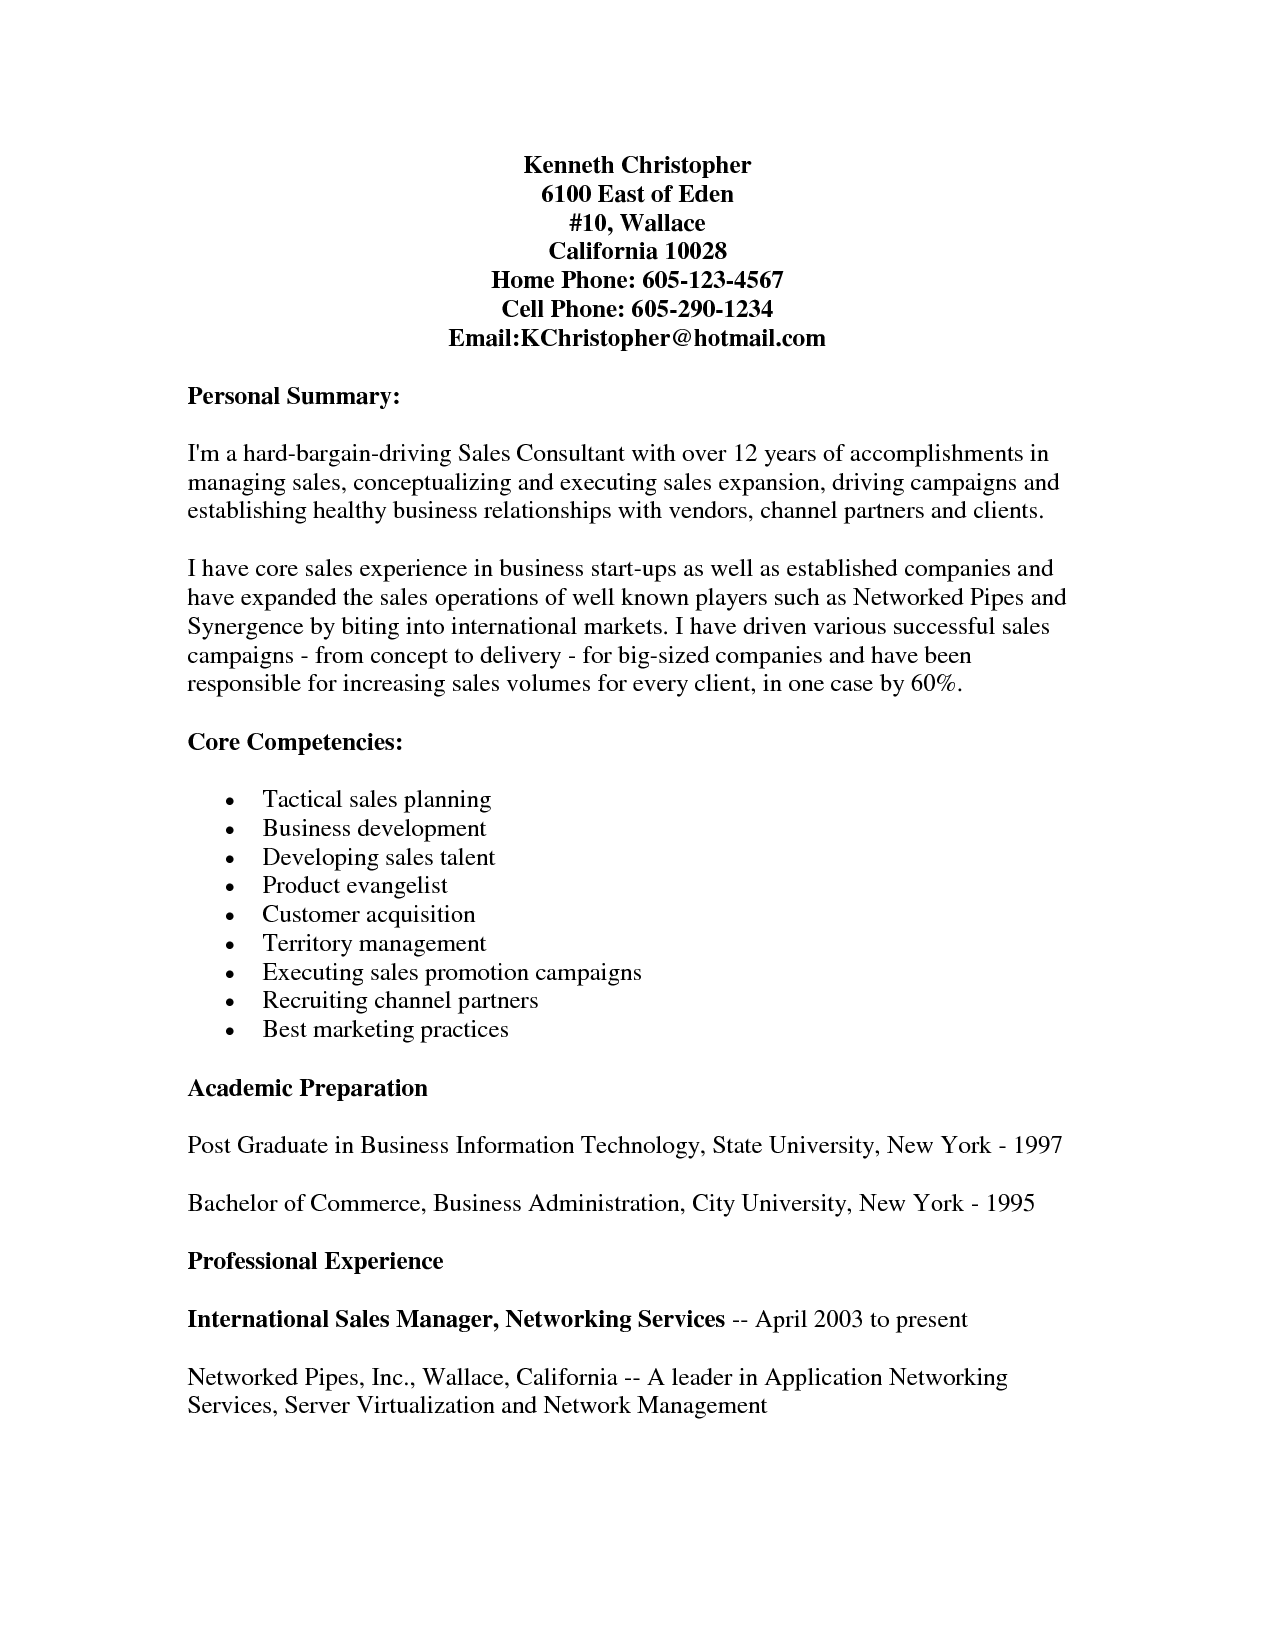 best resume templates best resume templates free download